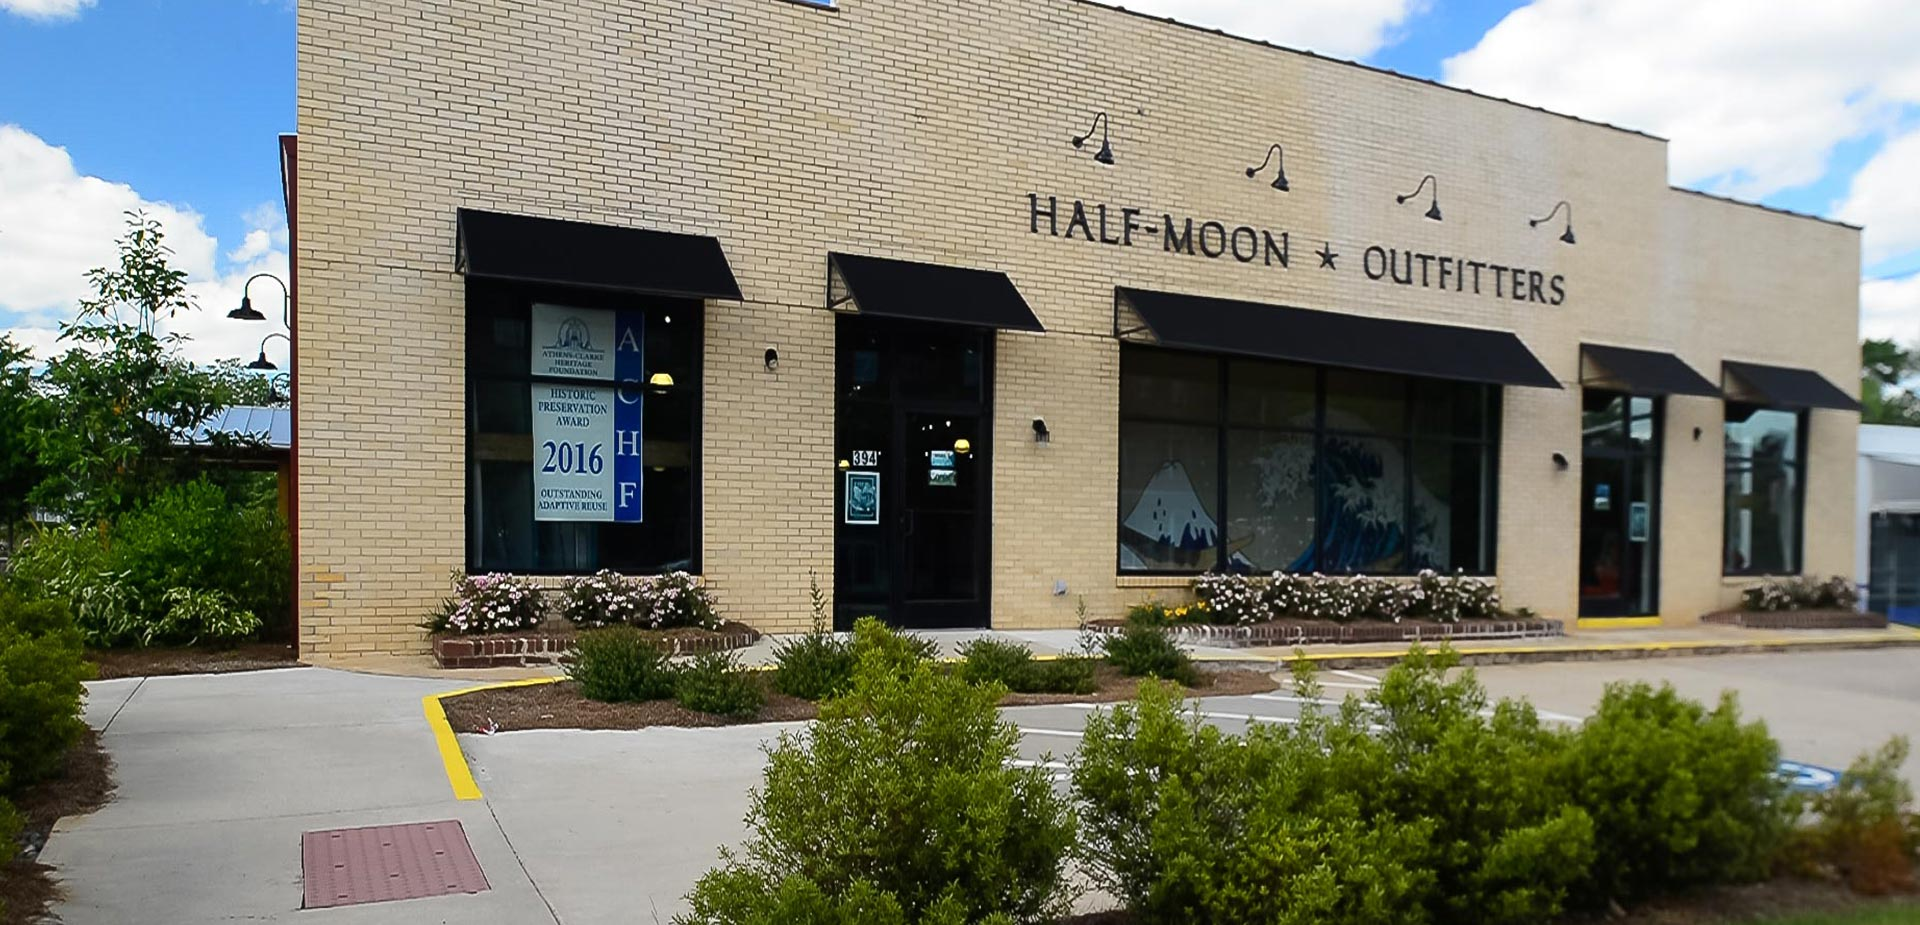 Half Moon Outfitters